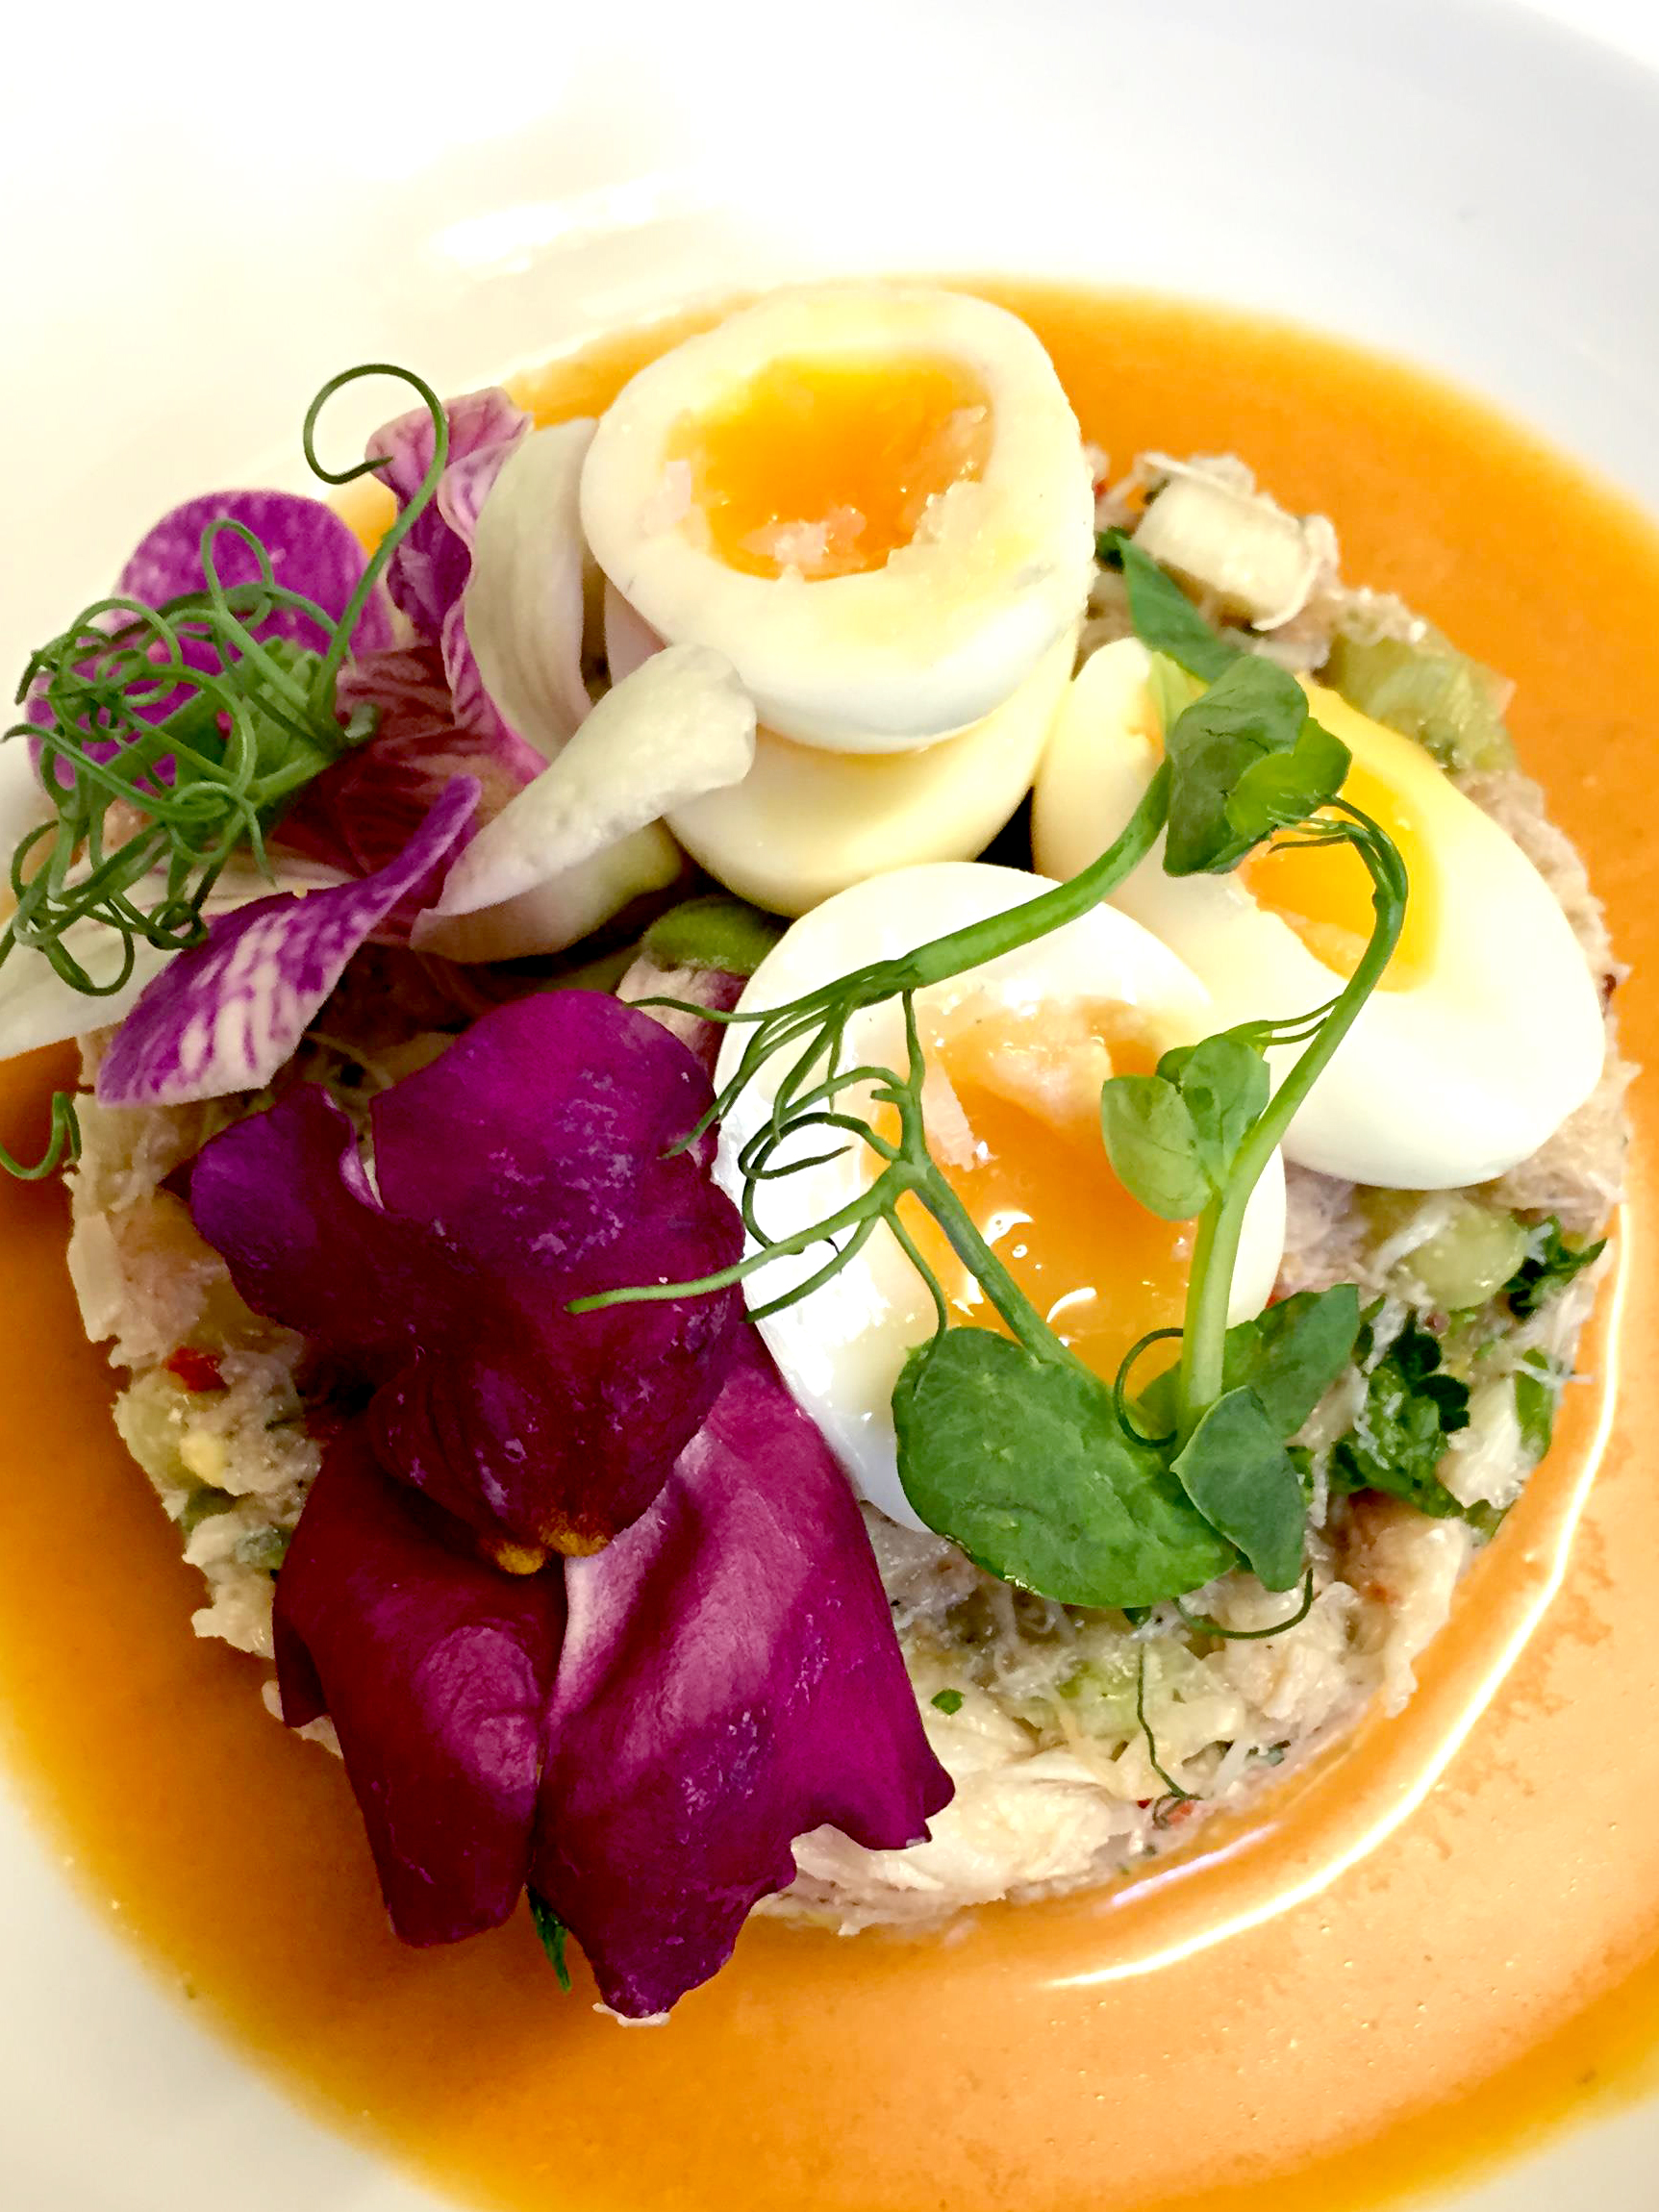 Crab, chilli & cucumber salad served with quails eggs & gazpacho dressing.2 JPG